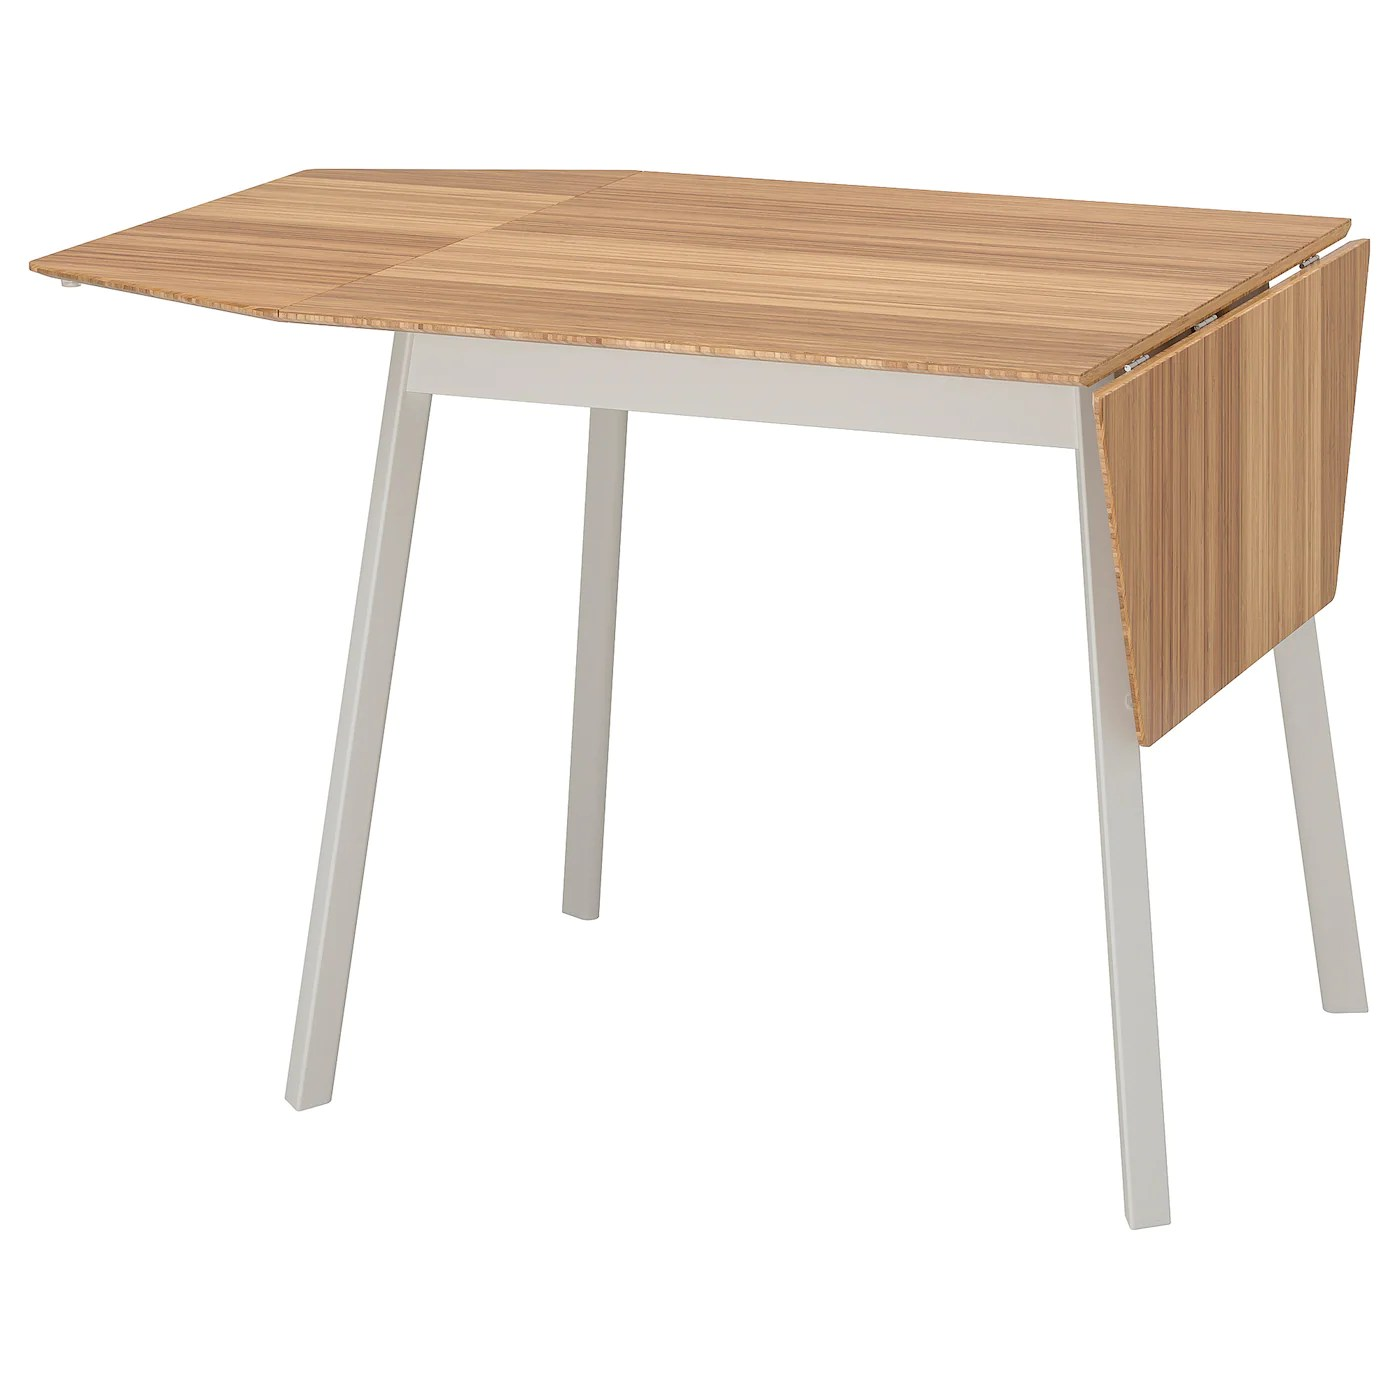 Ikea Ps 2012 Table à Abattants Bambou Blanc Magasinez Ici Ikea